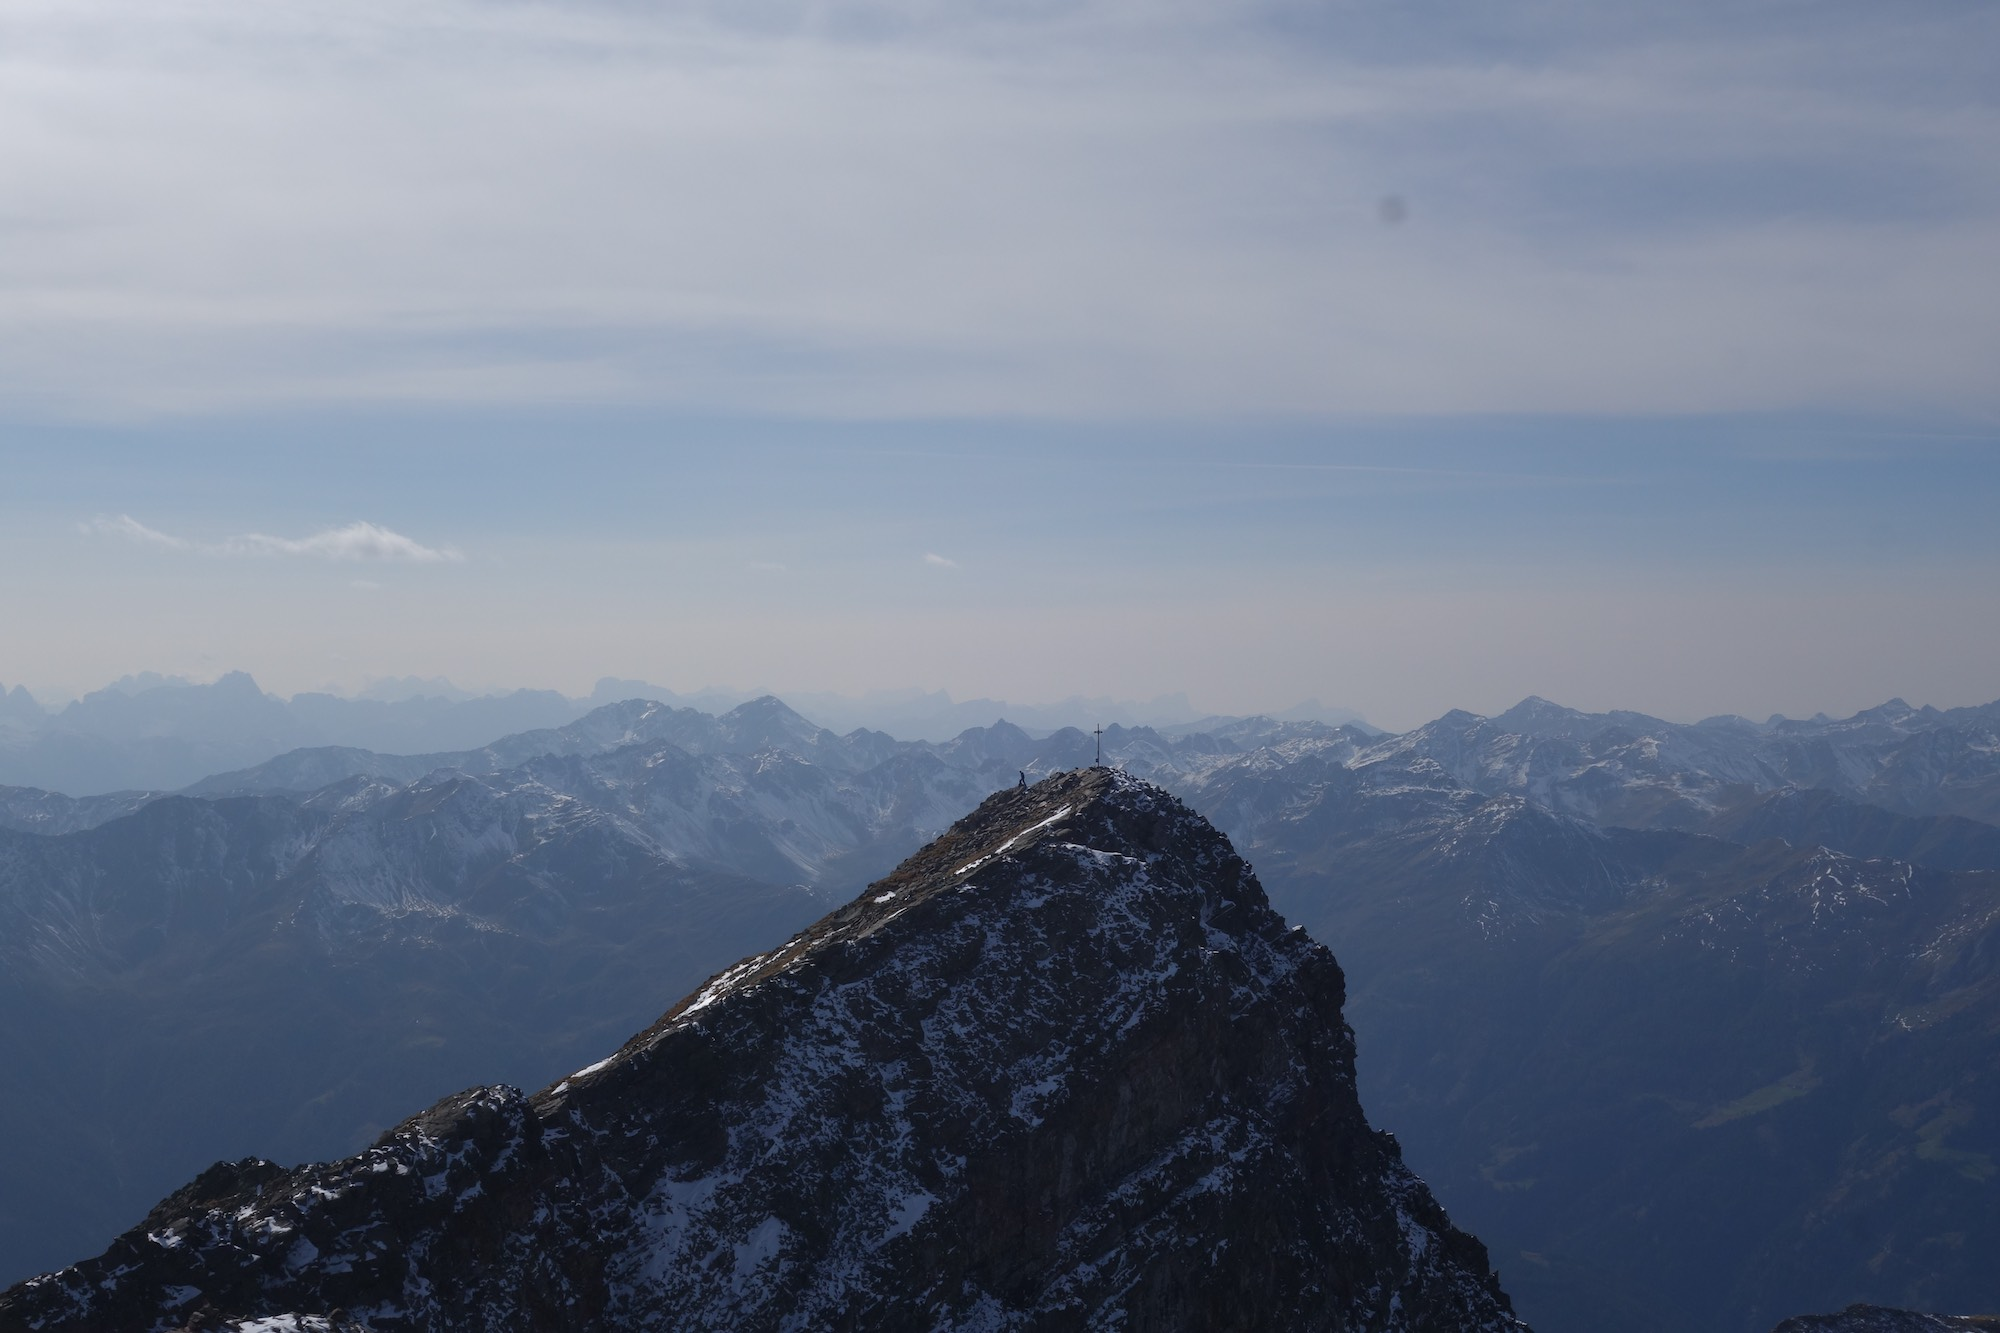 Prijakt, a beautiful double peaked mountain in the remote Schobergruppe,